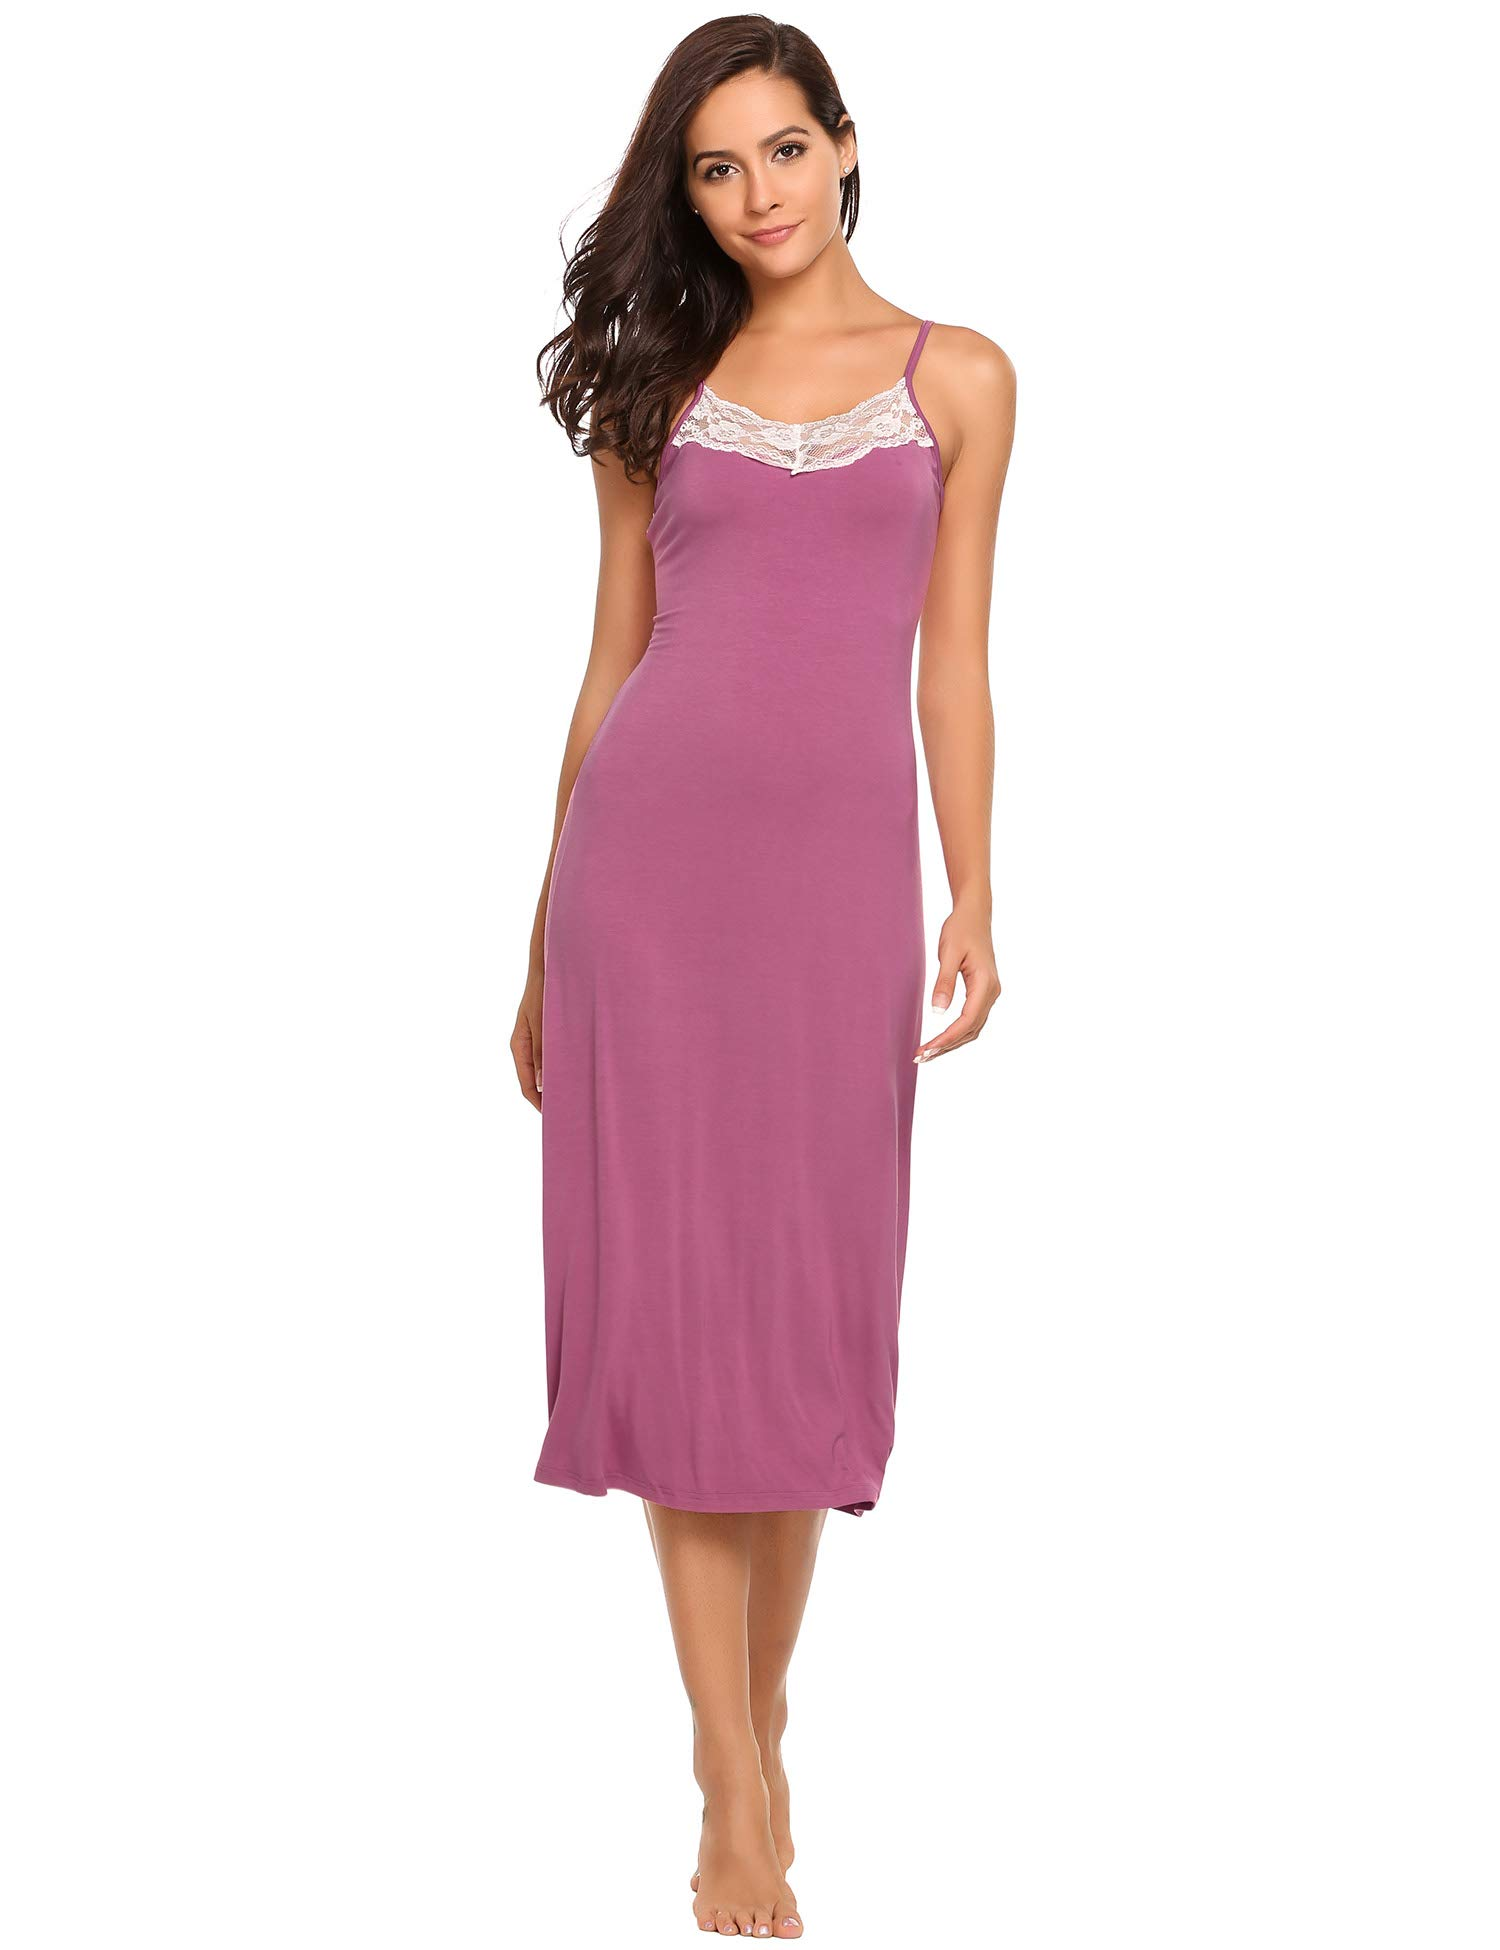 Ekouaer Womens Sleepwear Nightgown Full Slips Lace Sling Dress,7137-lavender-long Style,X-Large